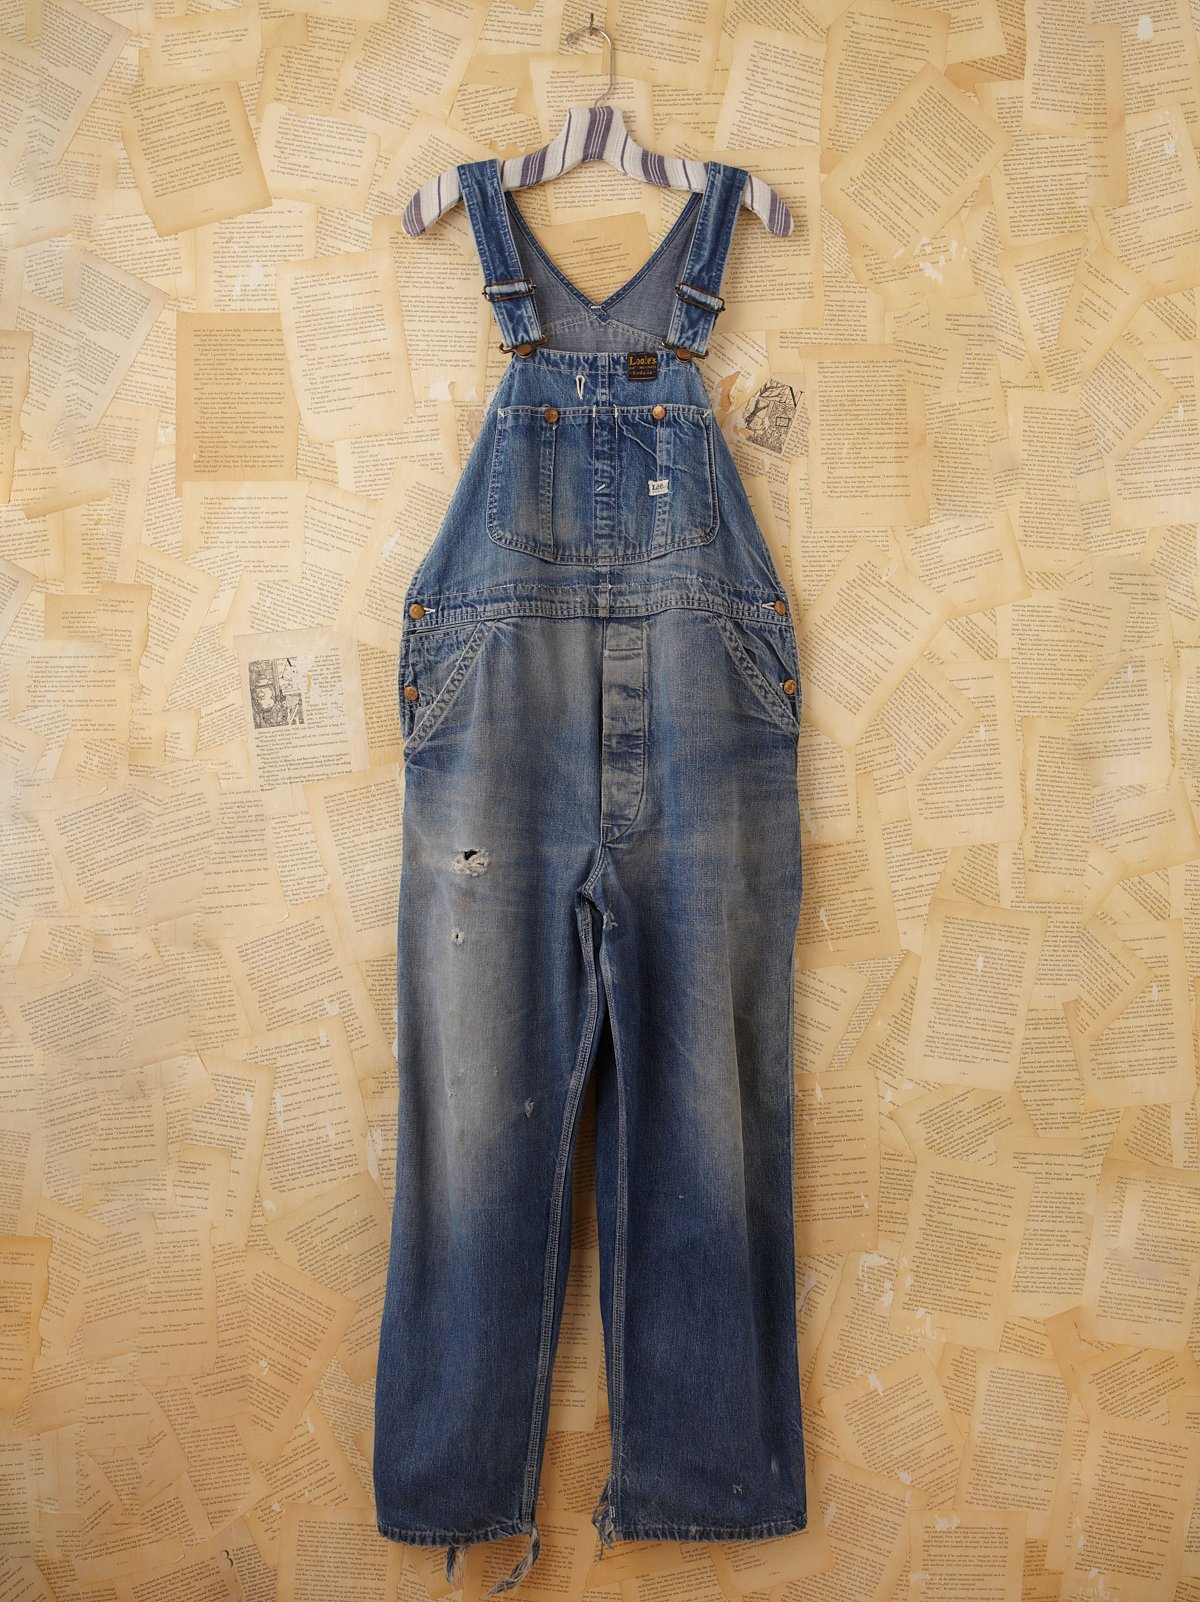 Vintage Distressed Denim Overalls